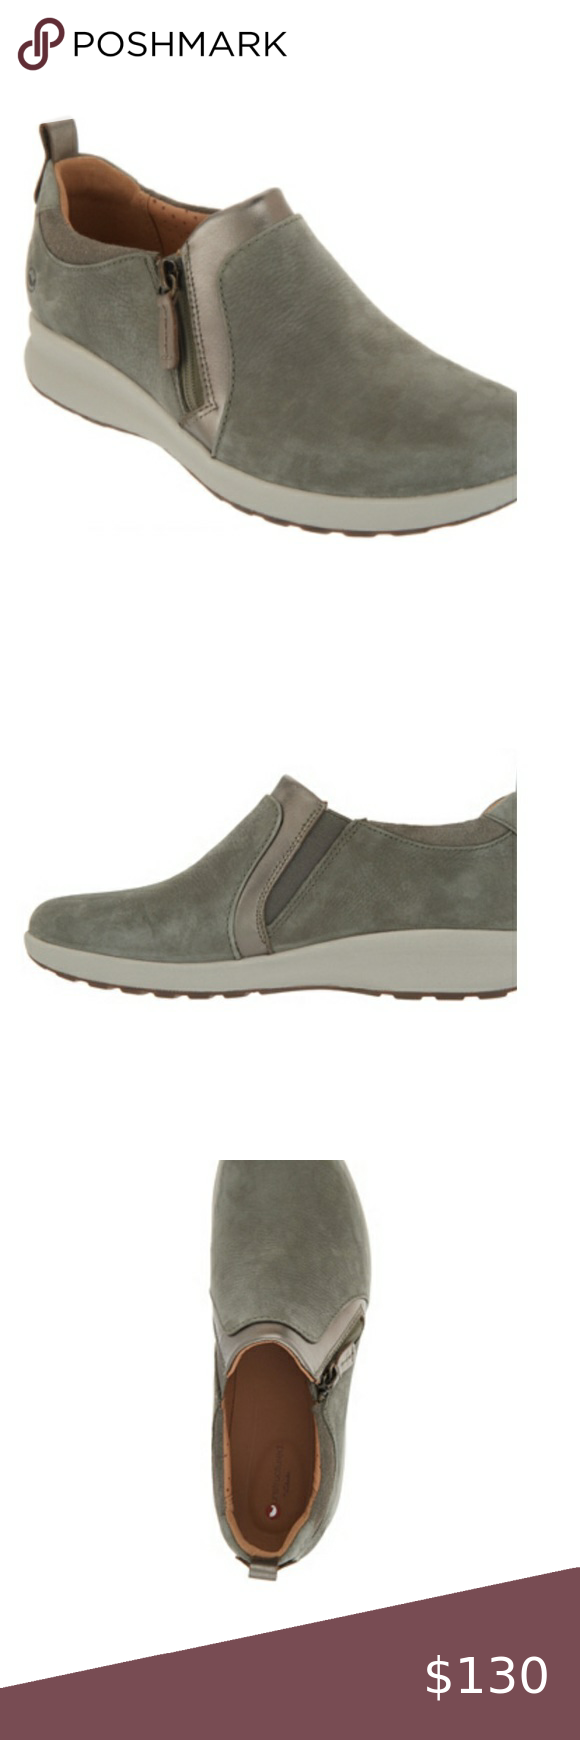 New Clarks Unstructured Side Zip Slip On Shoes Slip On Shoes On Shoes Clarks